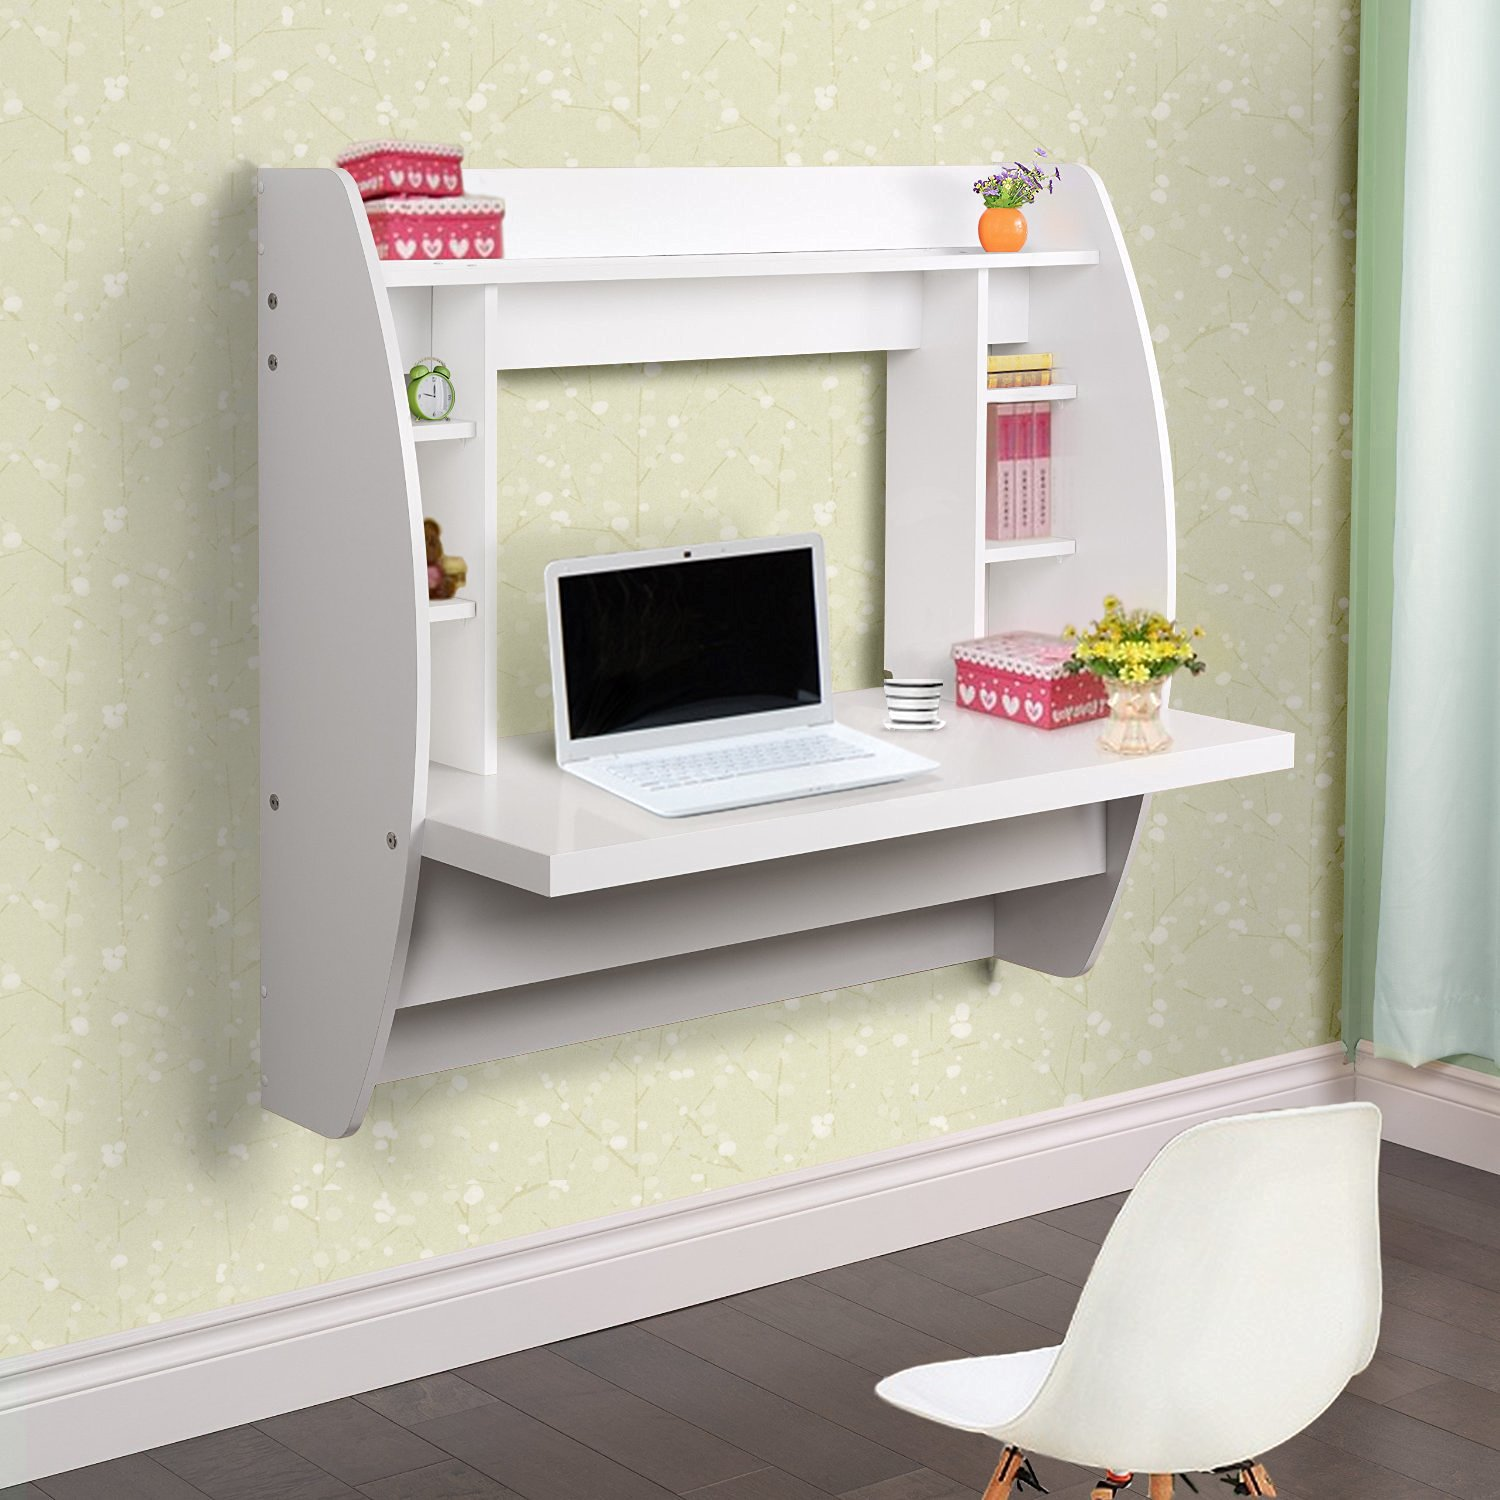 interiror design diy floating incridible storage exteriro with desk at unnamed home and file